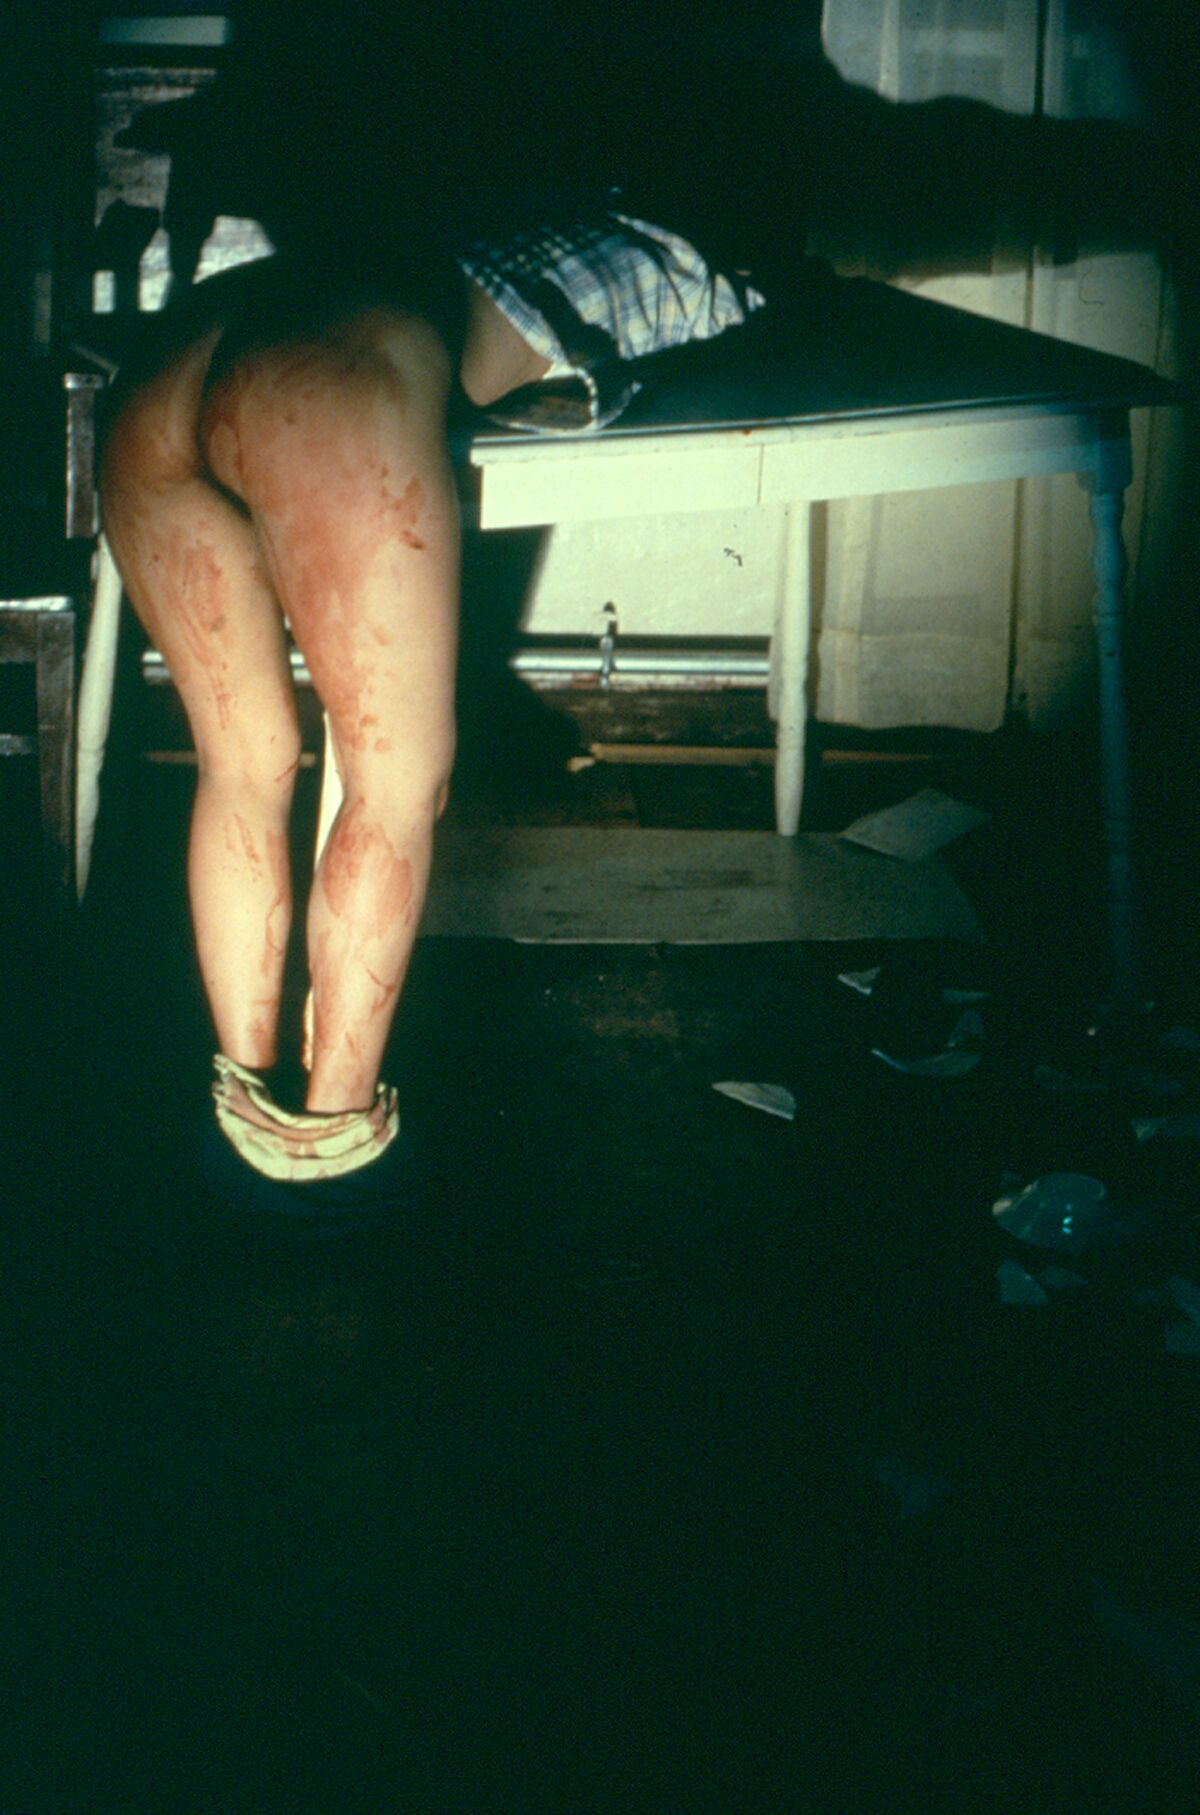 Ana Mendieta, Rape Scene, 1973. Courtesy of the Estate of Ana Mendieta Collection, LLC, and Galerie Lelong, NY.